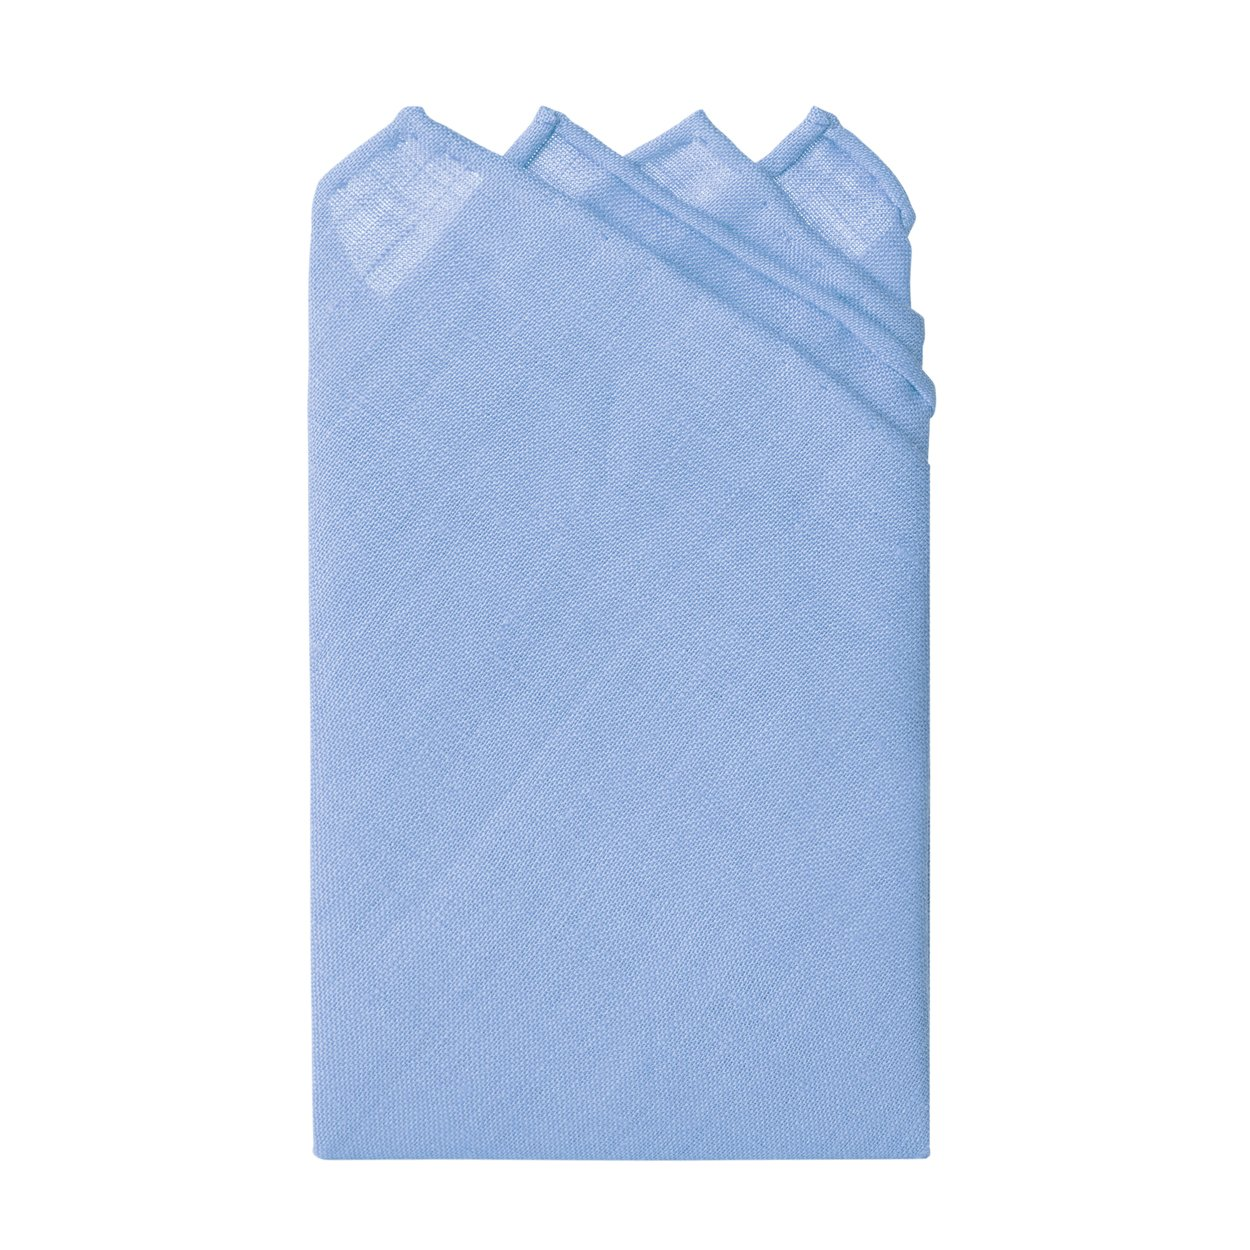 Jacob Alexander Linen Handrolled 15'' x 15'' Pocket Square Hanky - Baby Blue